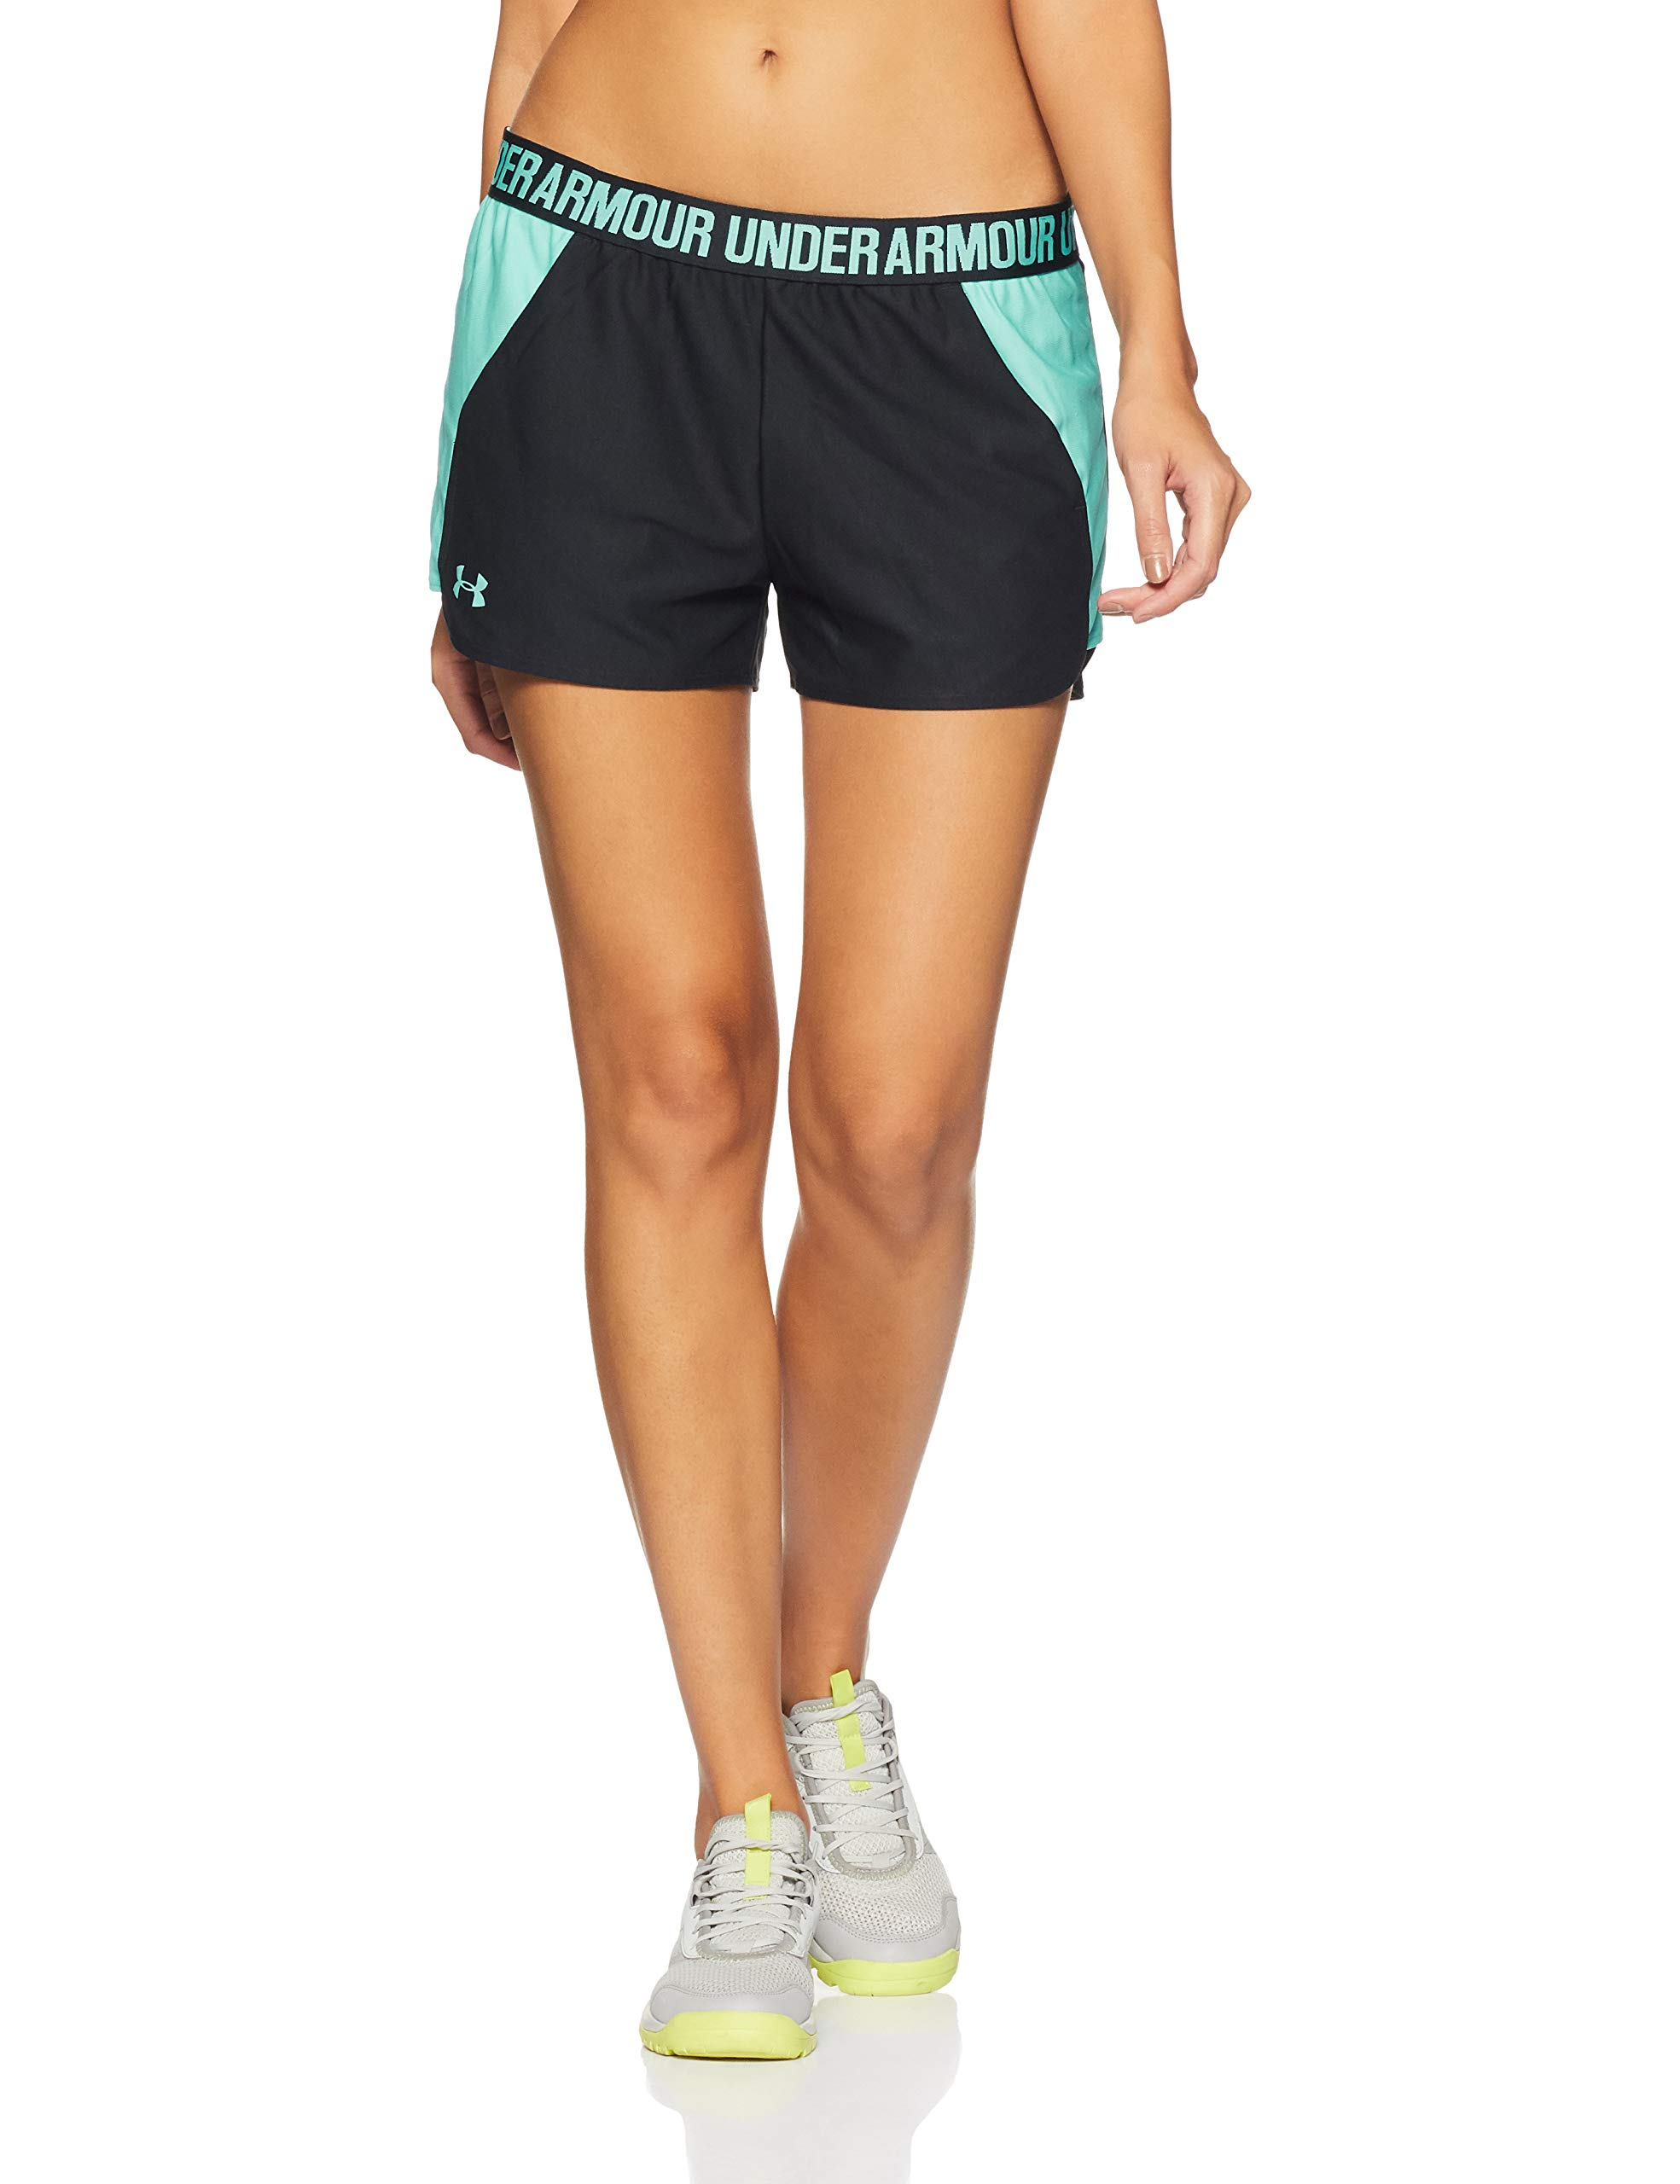 Under Armour Women's Play Up Shorts 2.0, Black (017)/Tropical Tide, XX-Small